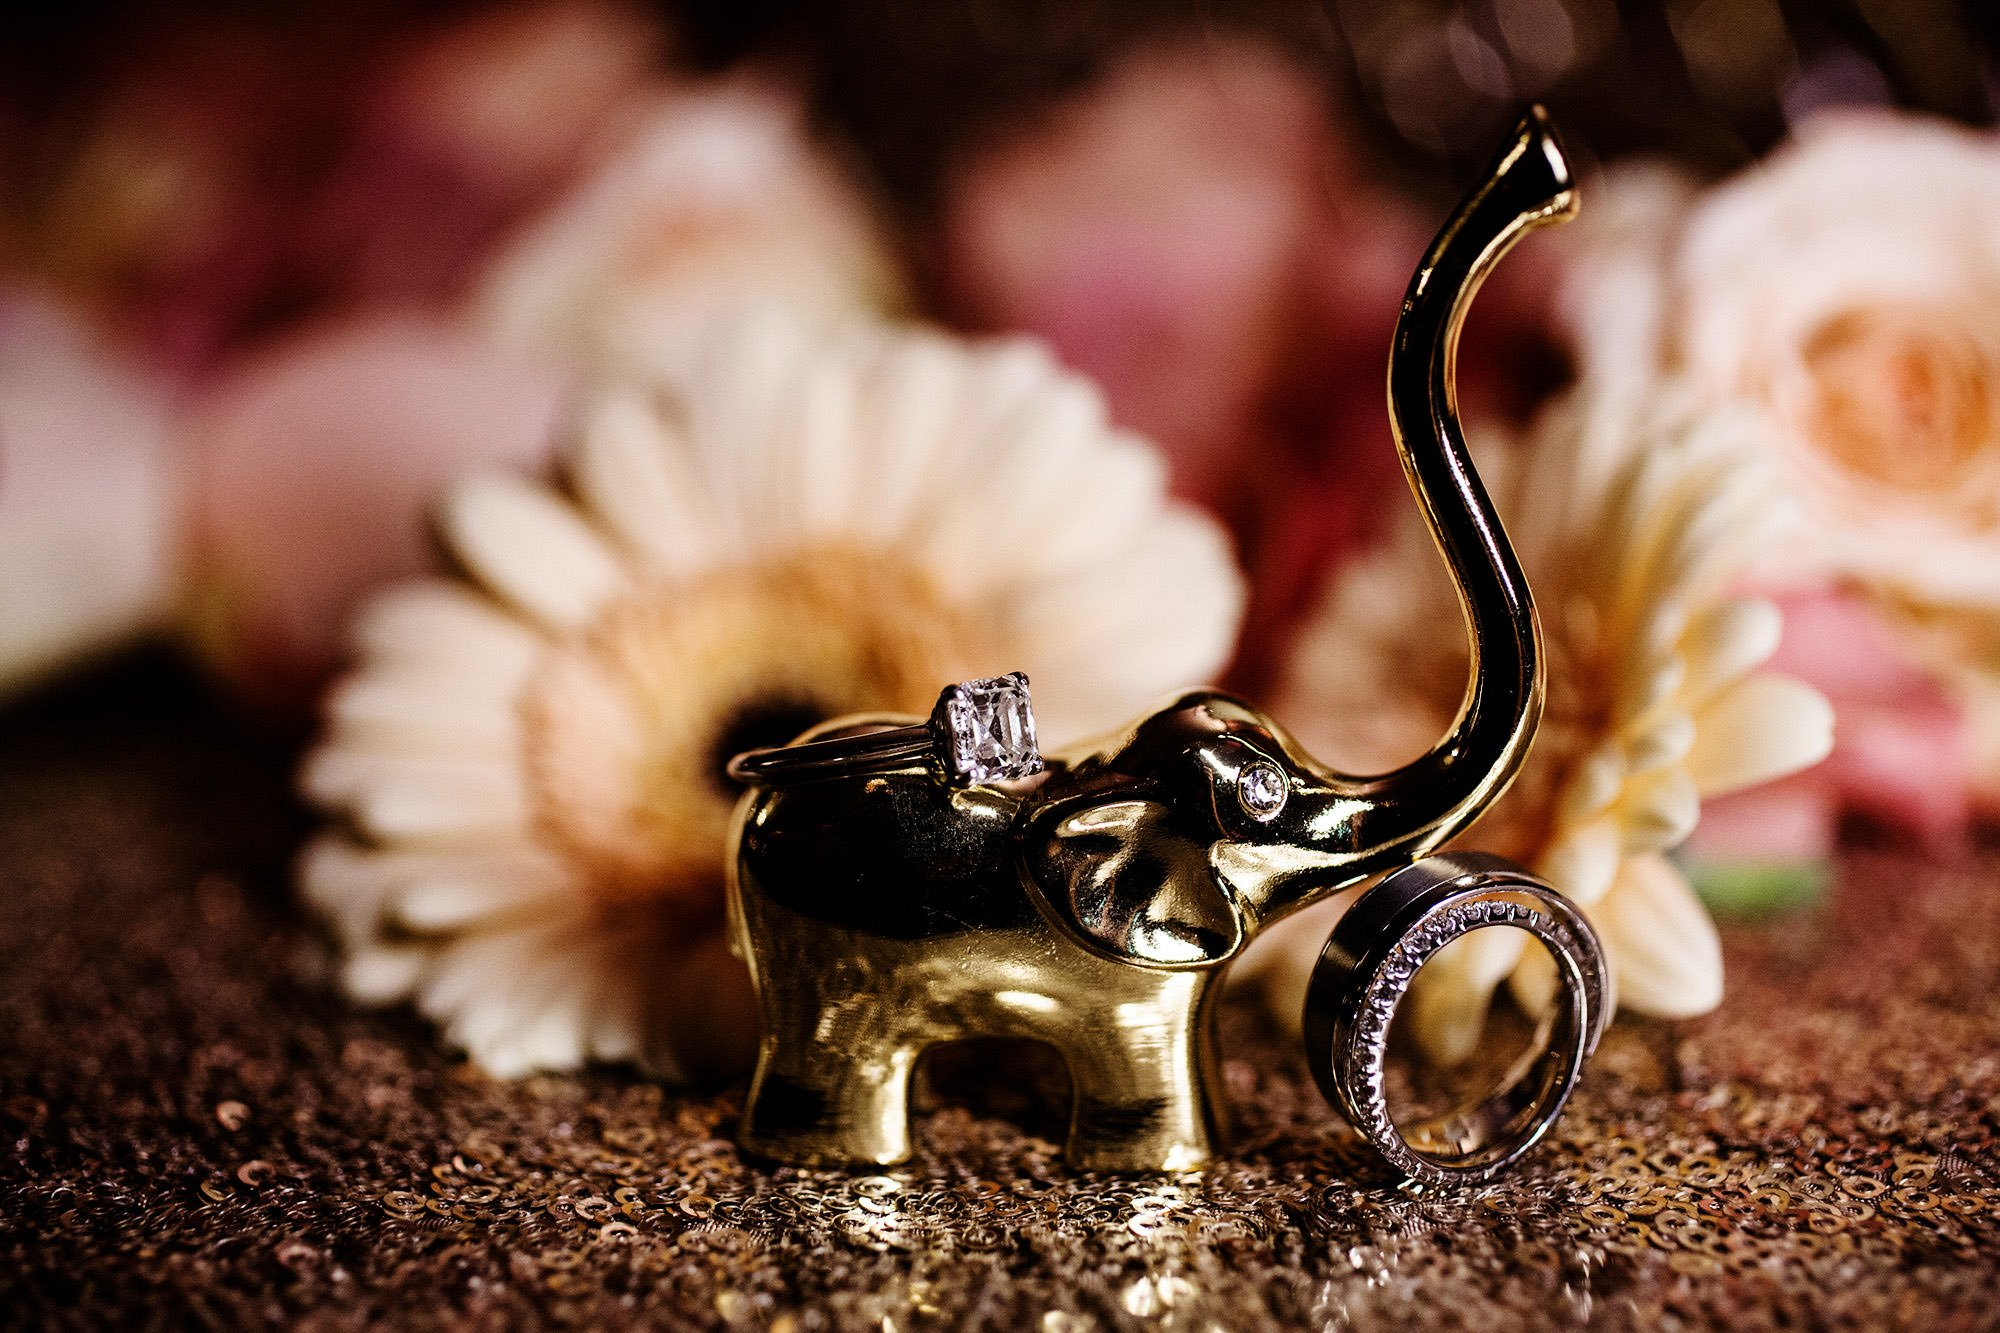 A Hindu Ring Detail during this Foxchase Manor Wedding.